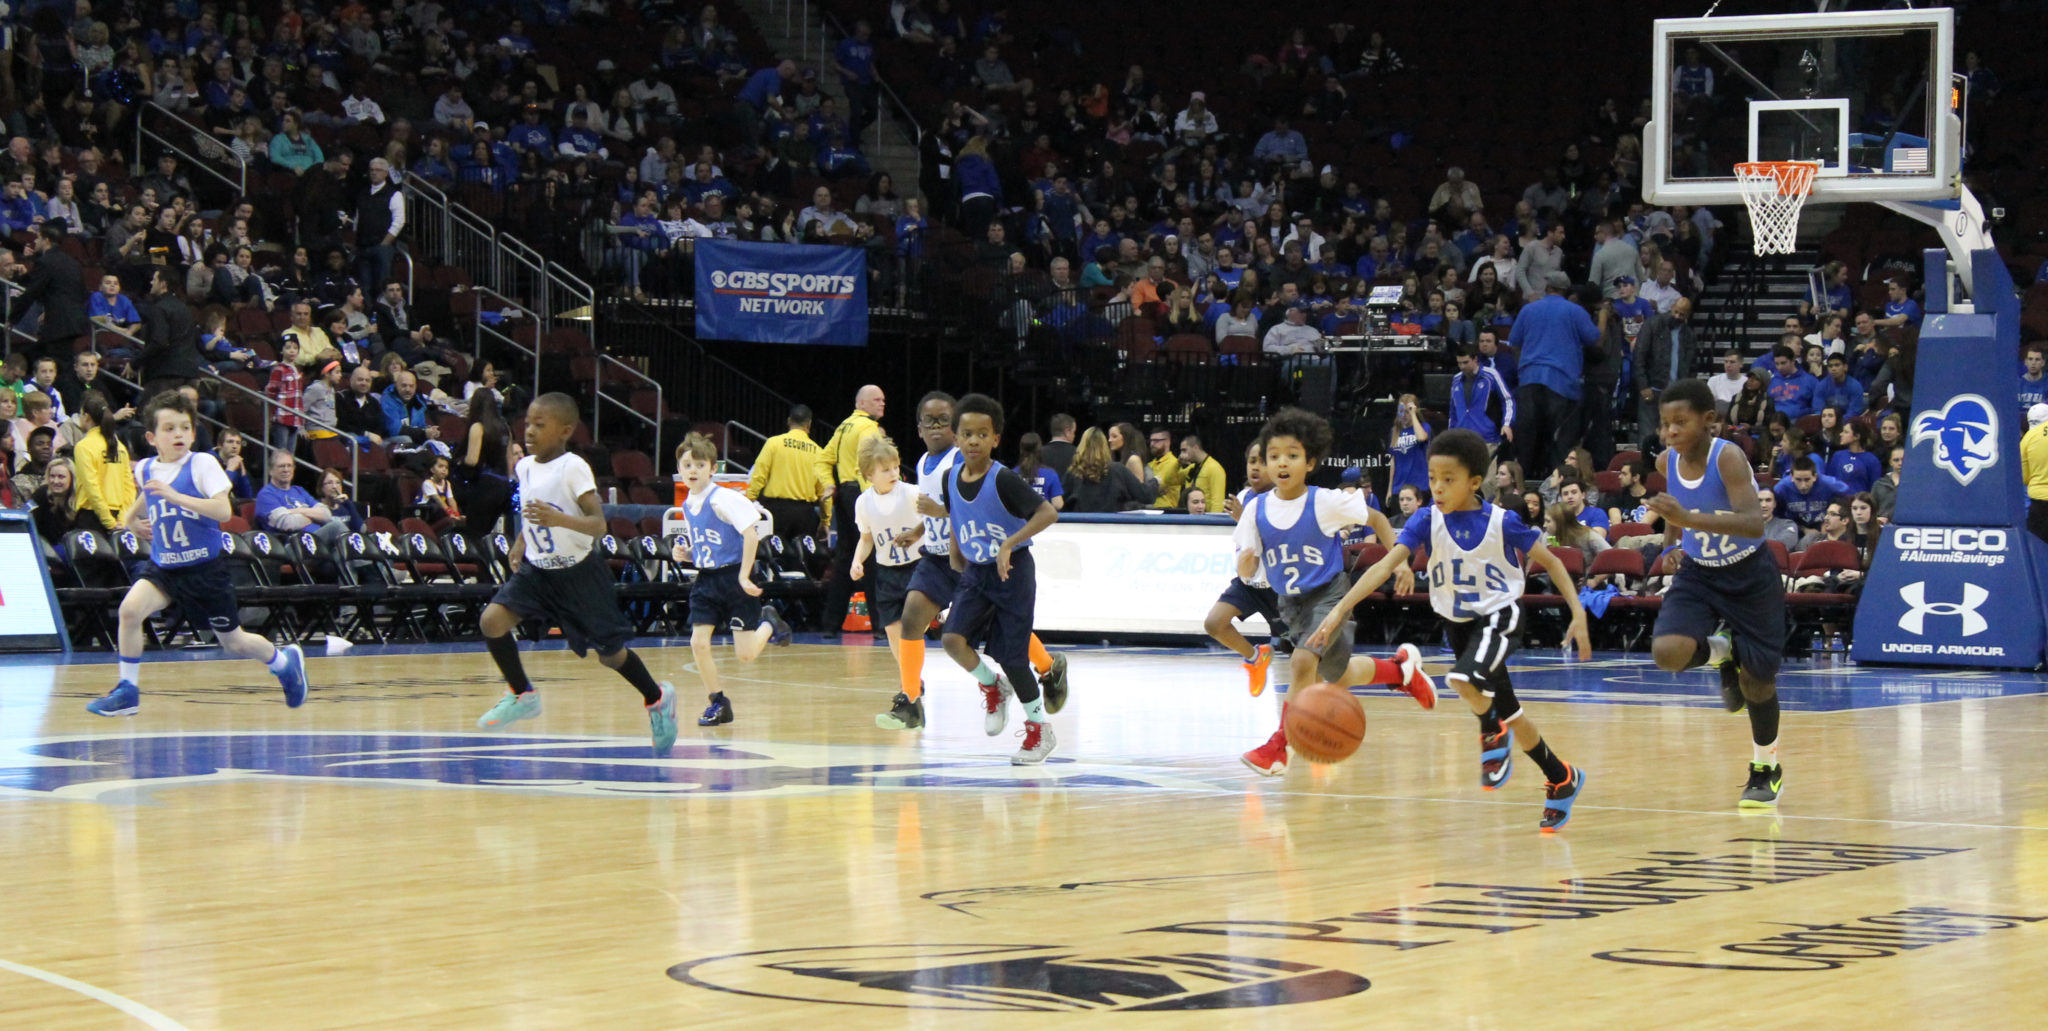 Each year, the OLS Basketball team plays at the Prudential Center (during halftime of a Seton Hall basketball game).